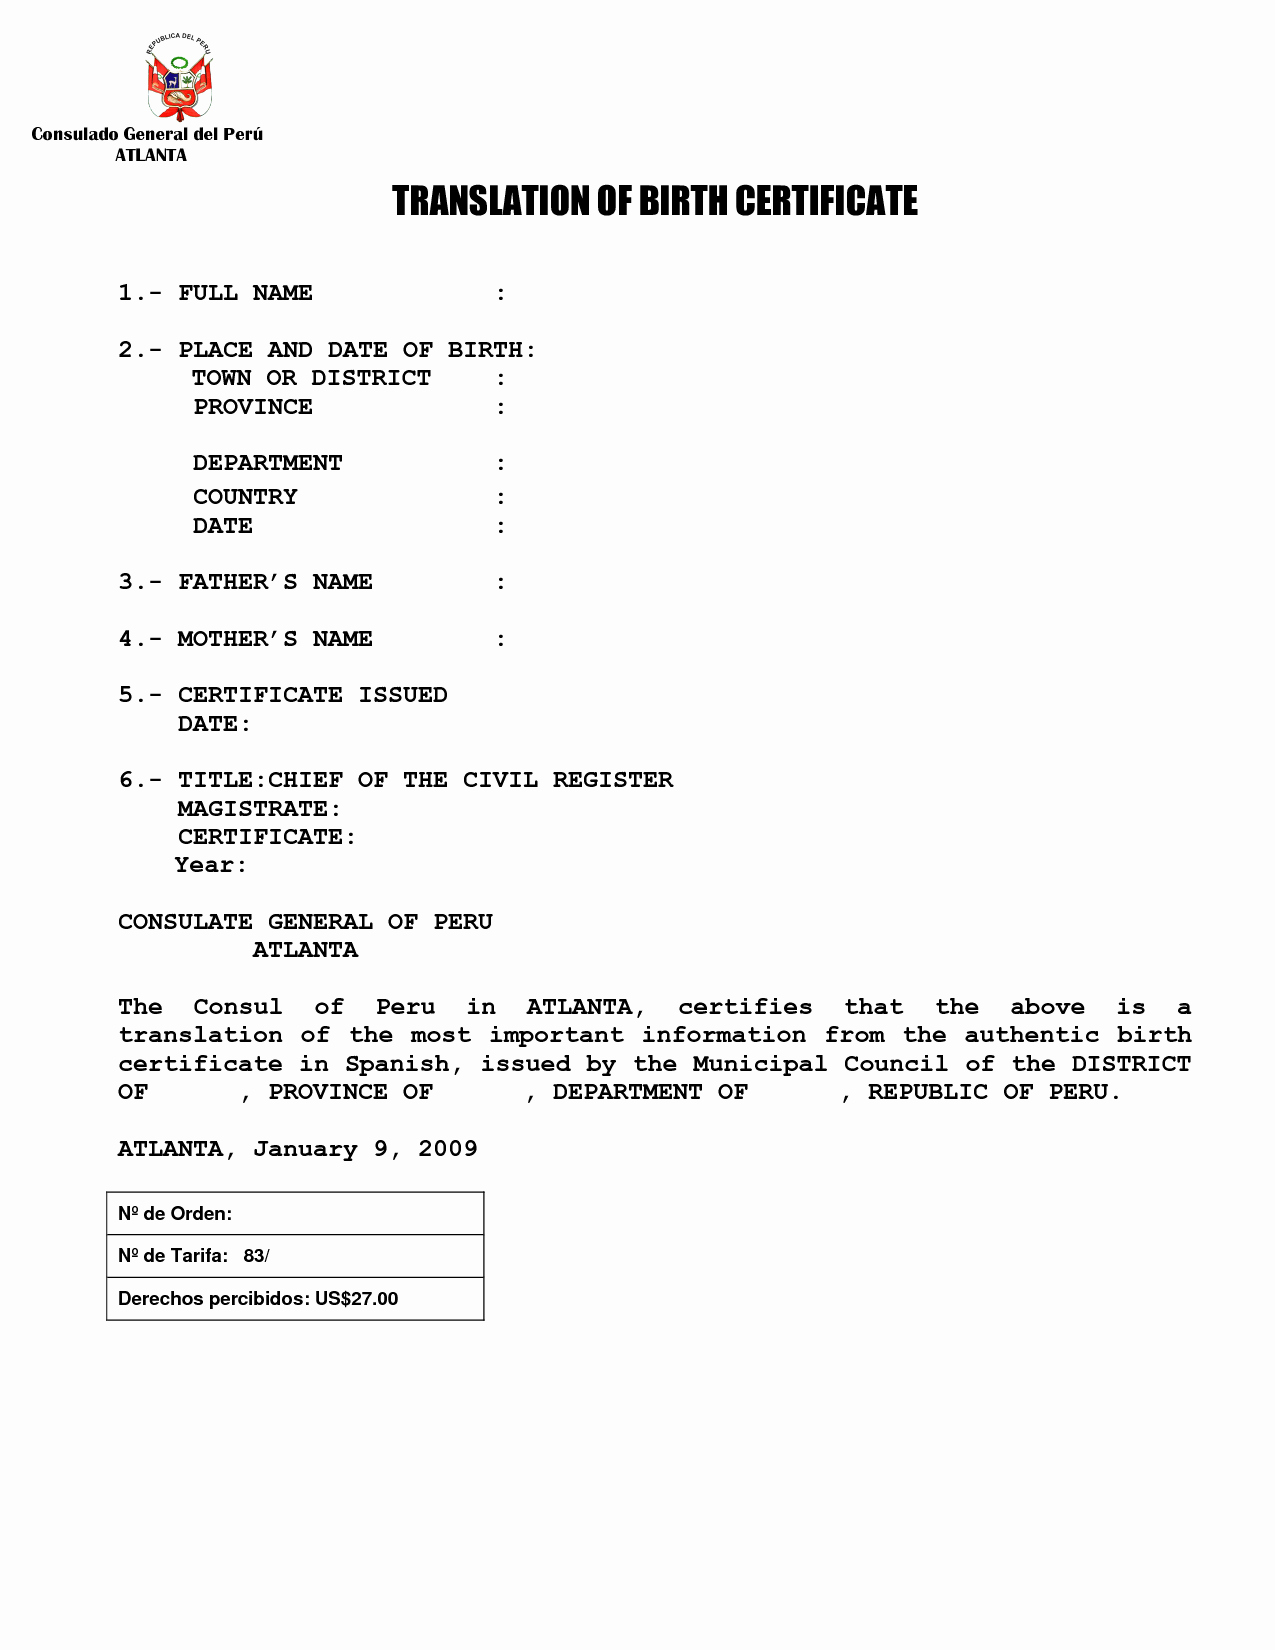 Mexican Birth Certificate Translation Template Pdf Awesome Best S Of Birth Certificate Translation Samples